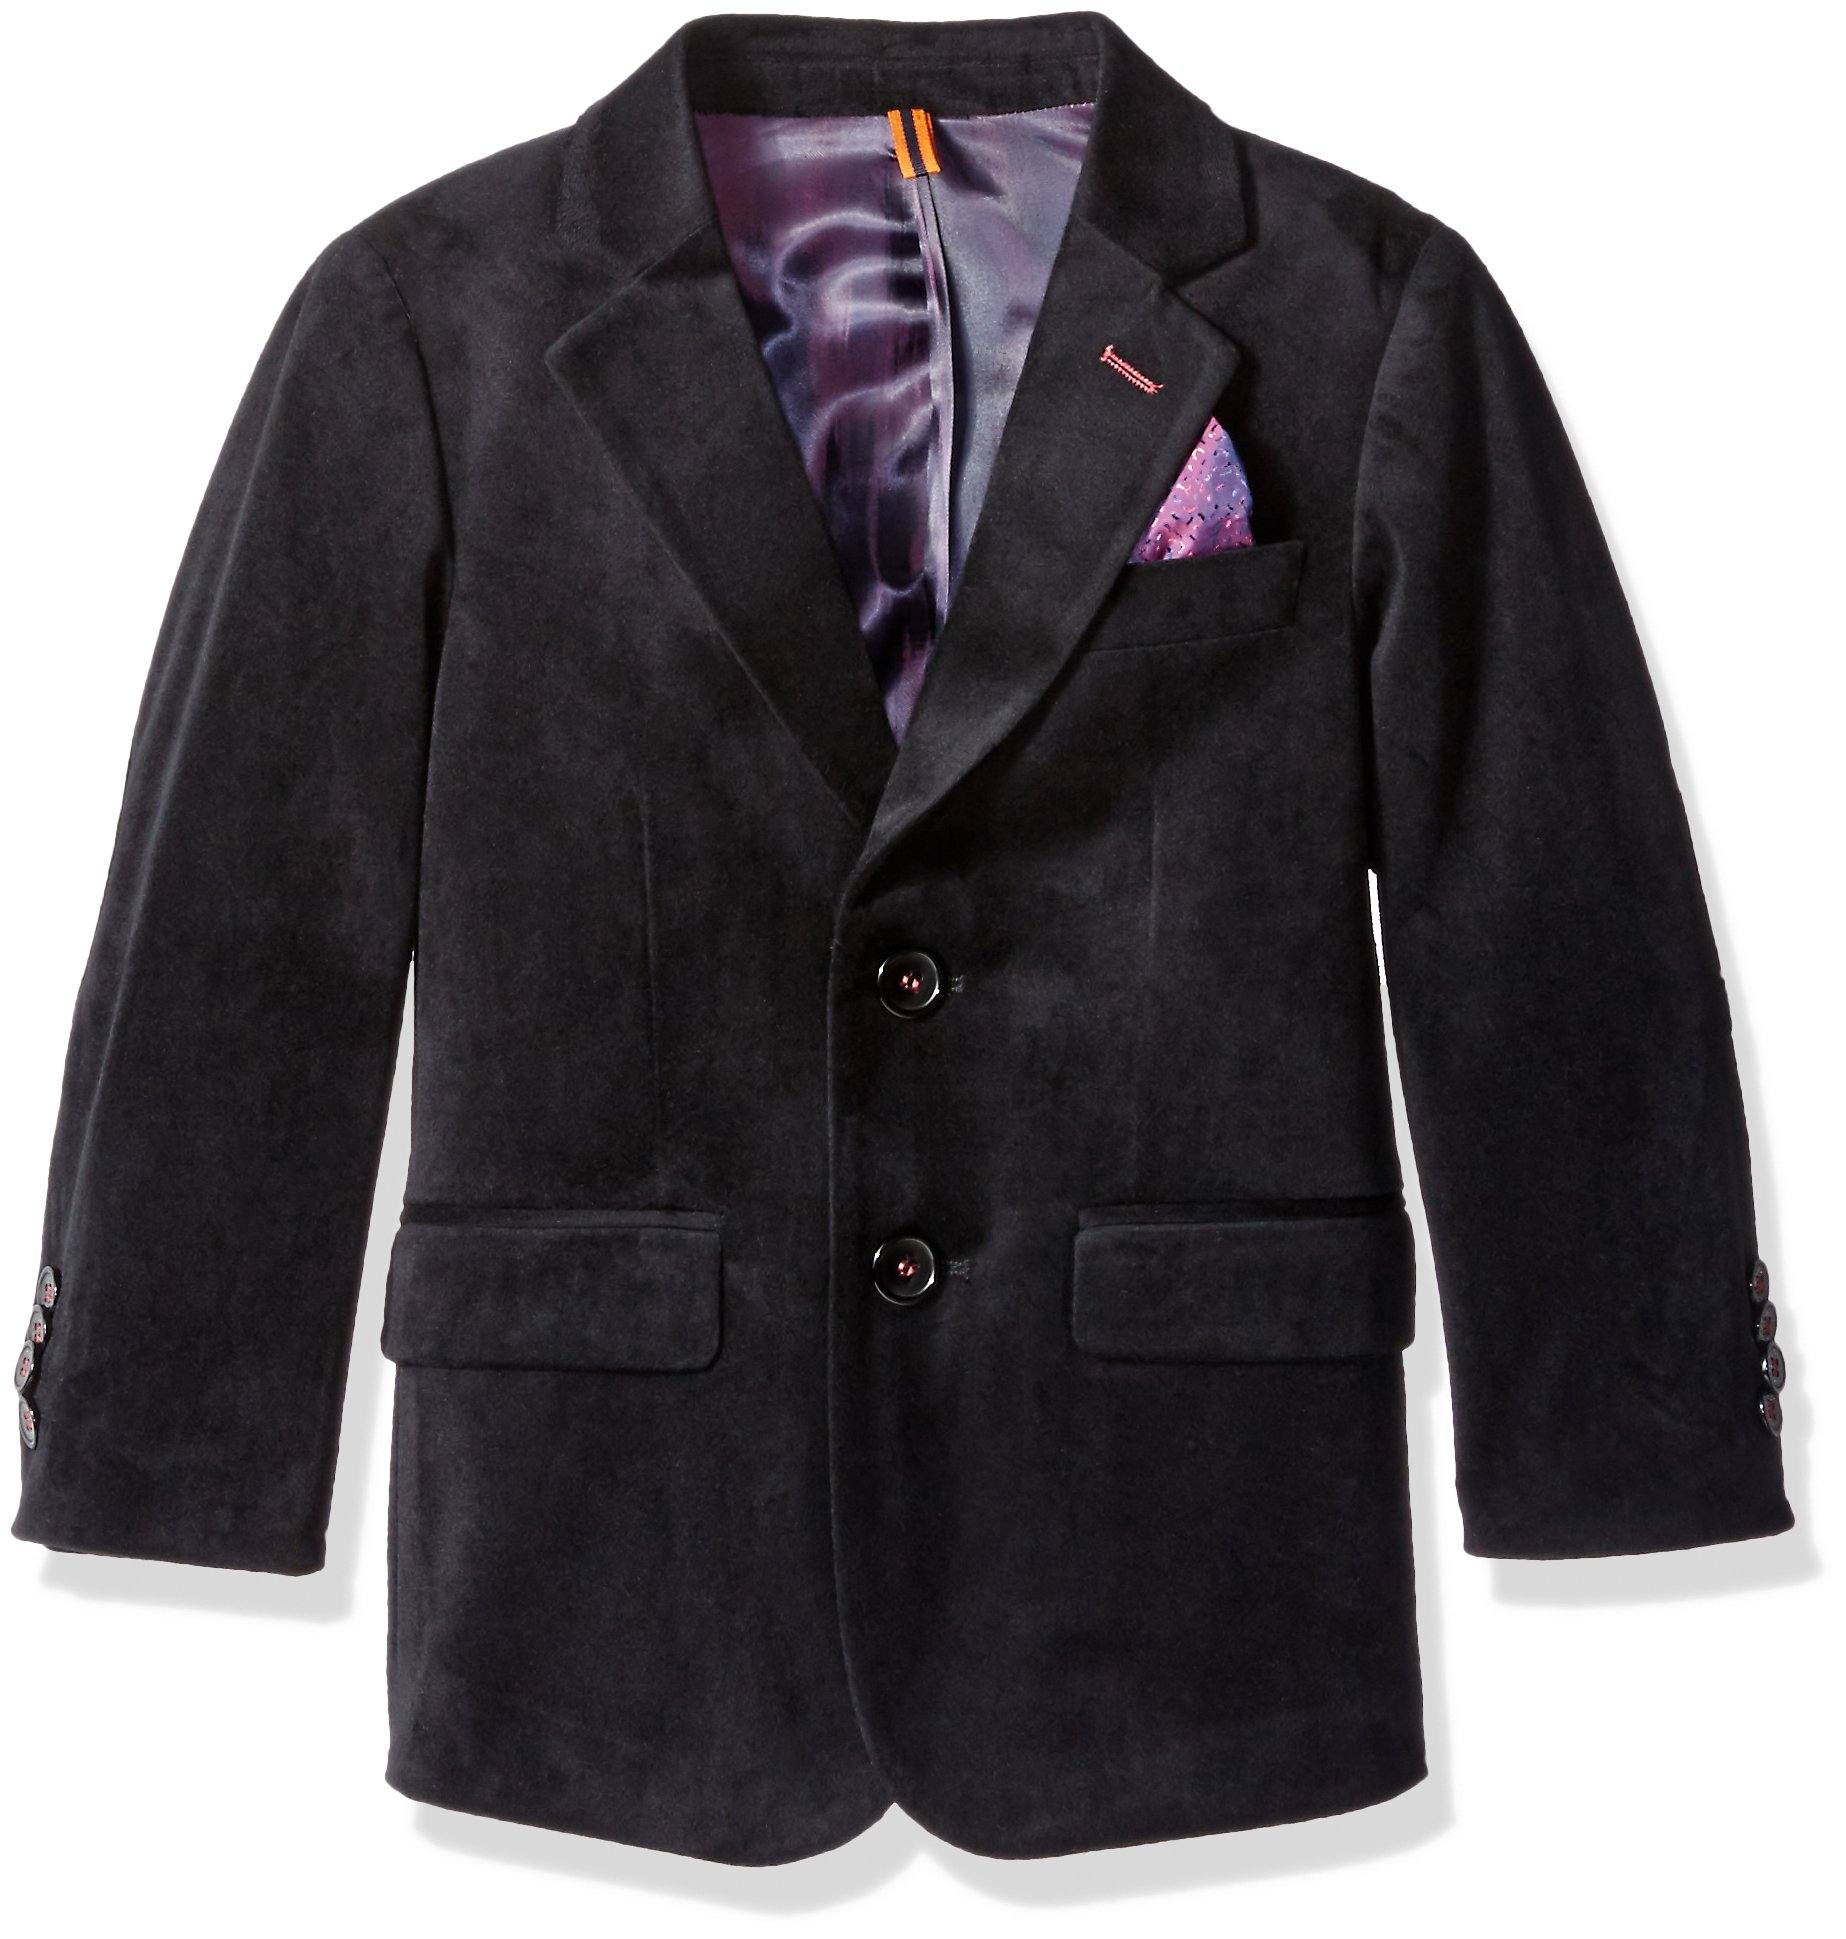 Isaac Mizrahi Boys' Big Boys' Single-Breasted Velvet Blazer, Midnight Black, 16 by Isaac Mizrahi